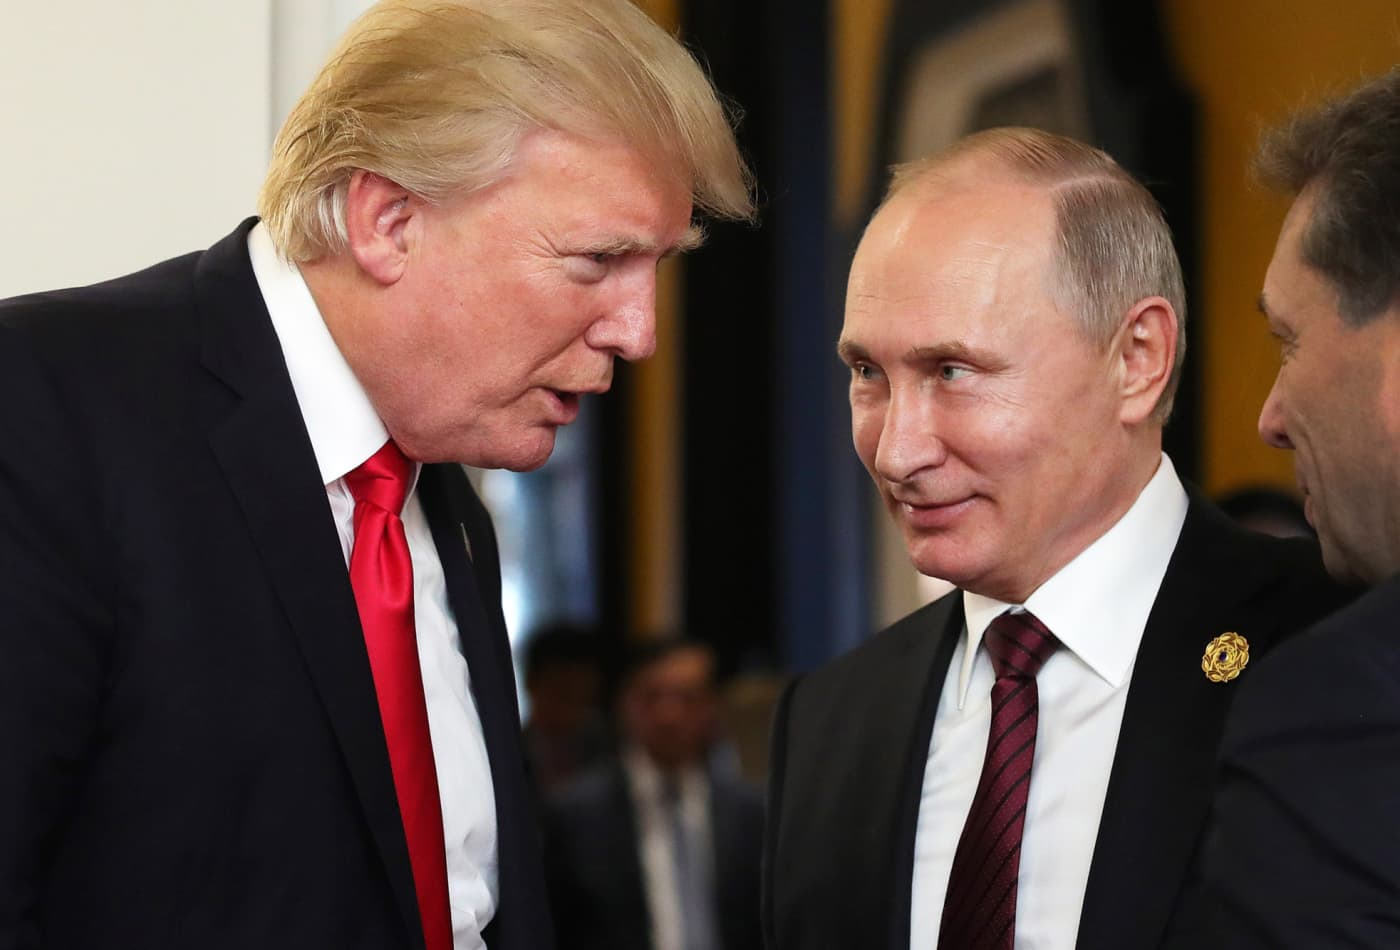 Trump and Putin talked about Mueller report, Venezuela and North Korea during phone call